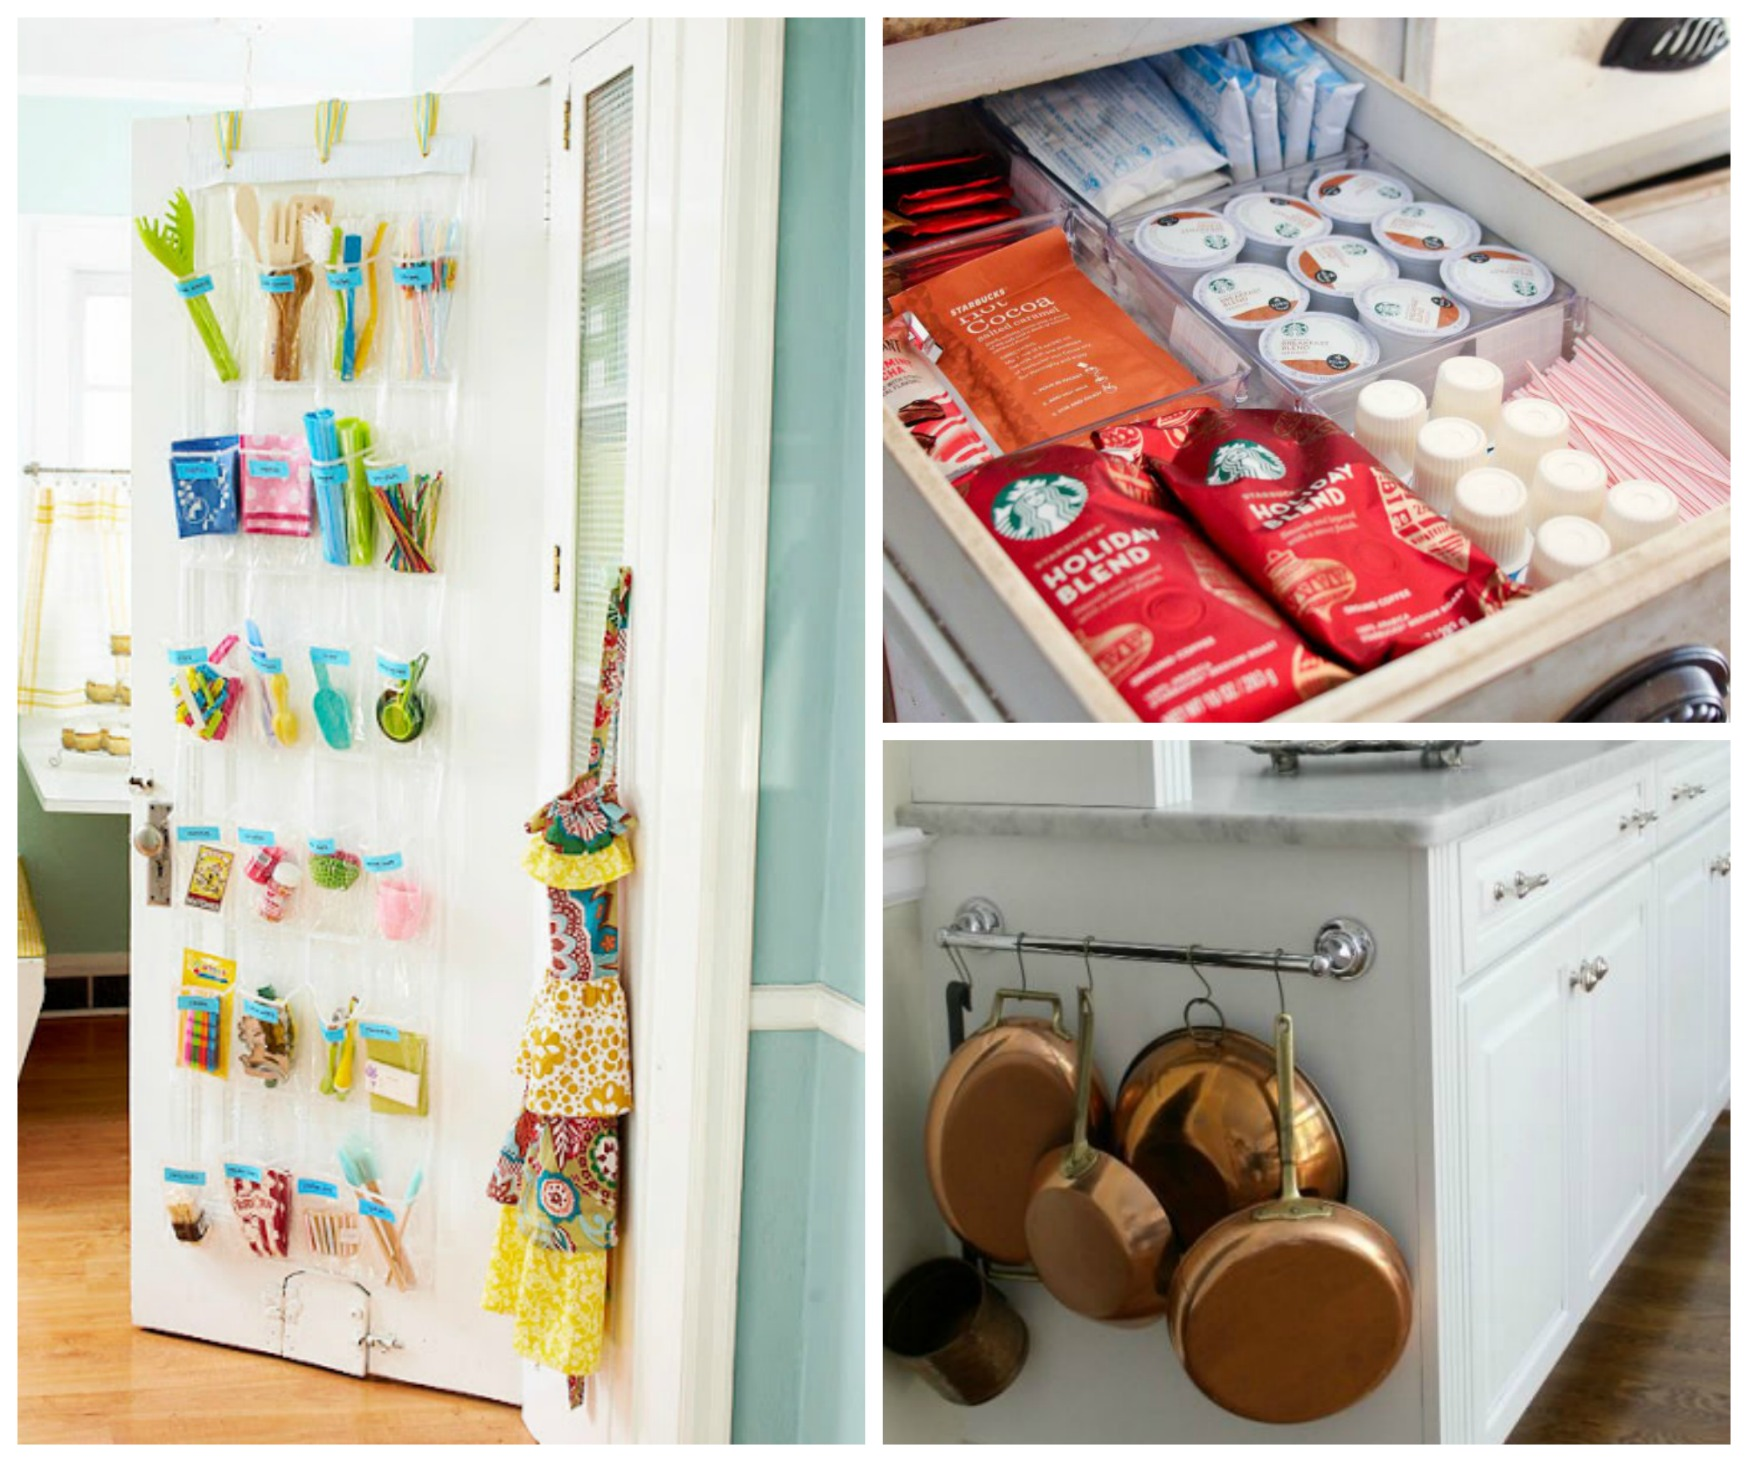 25 Kitchen Organization Ideas You Need To Try IIQRBGM